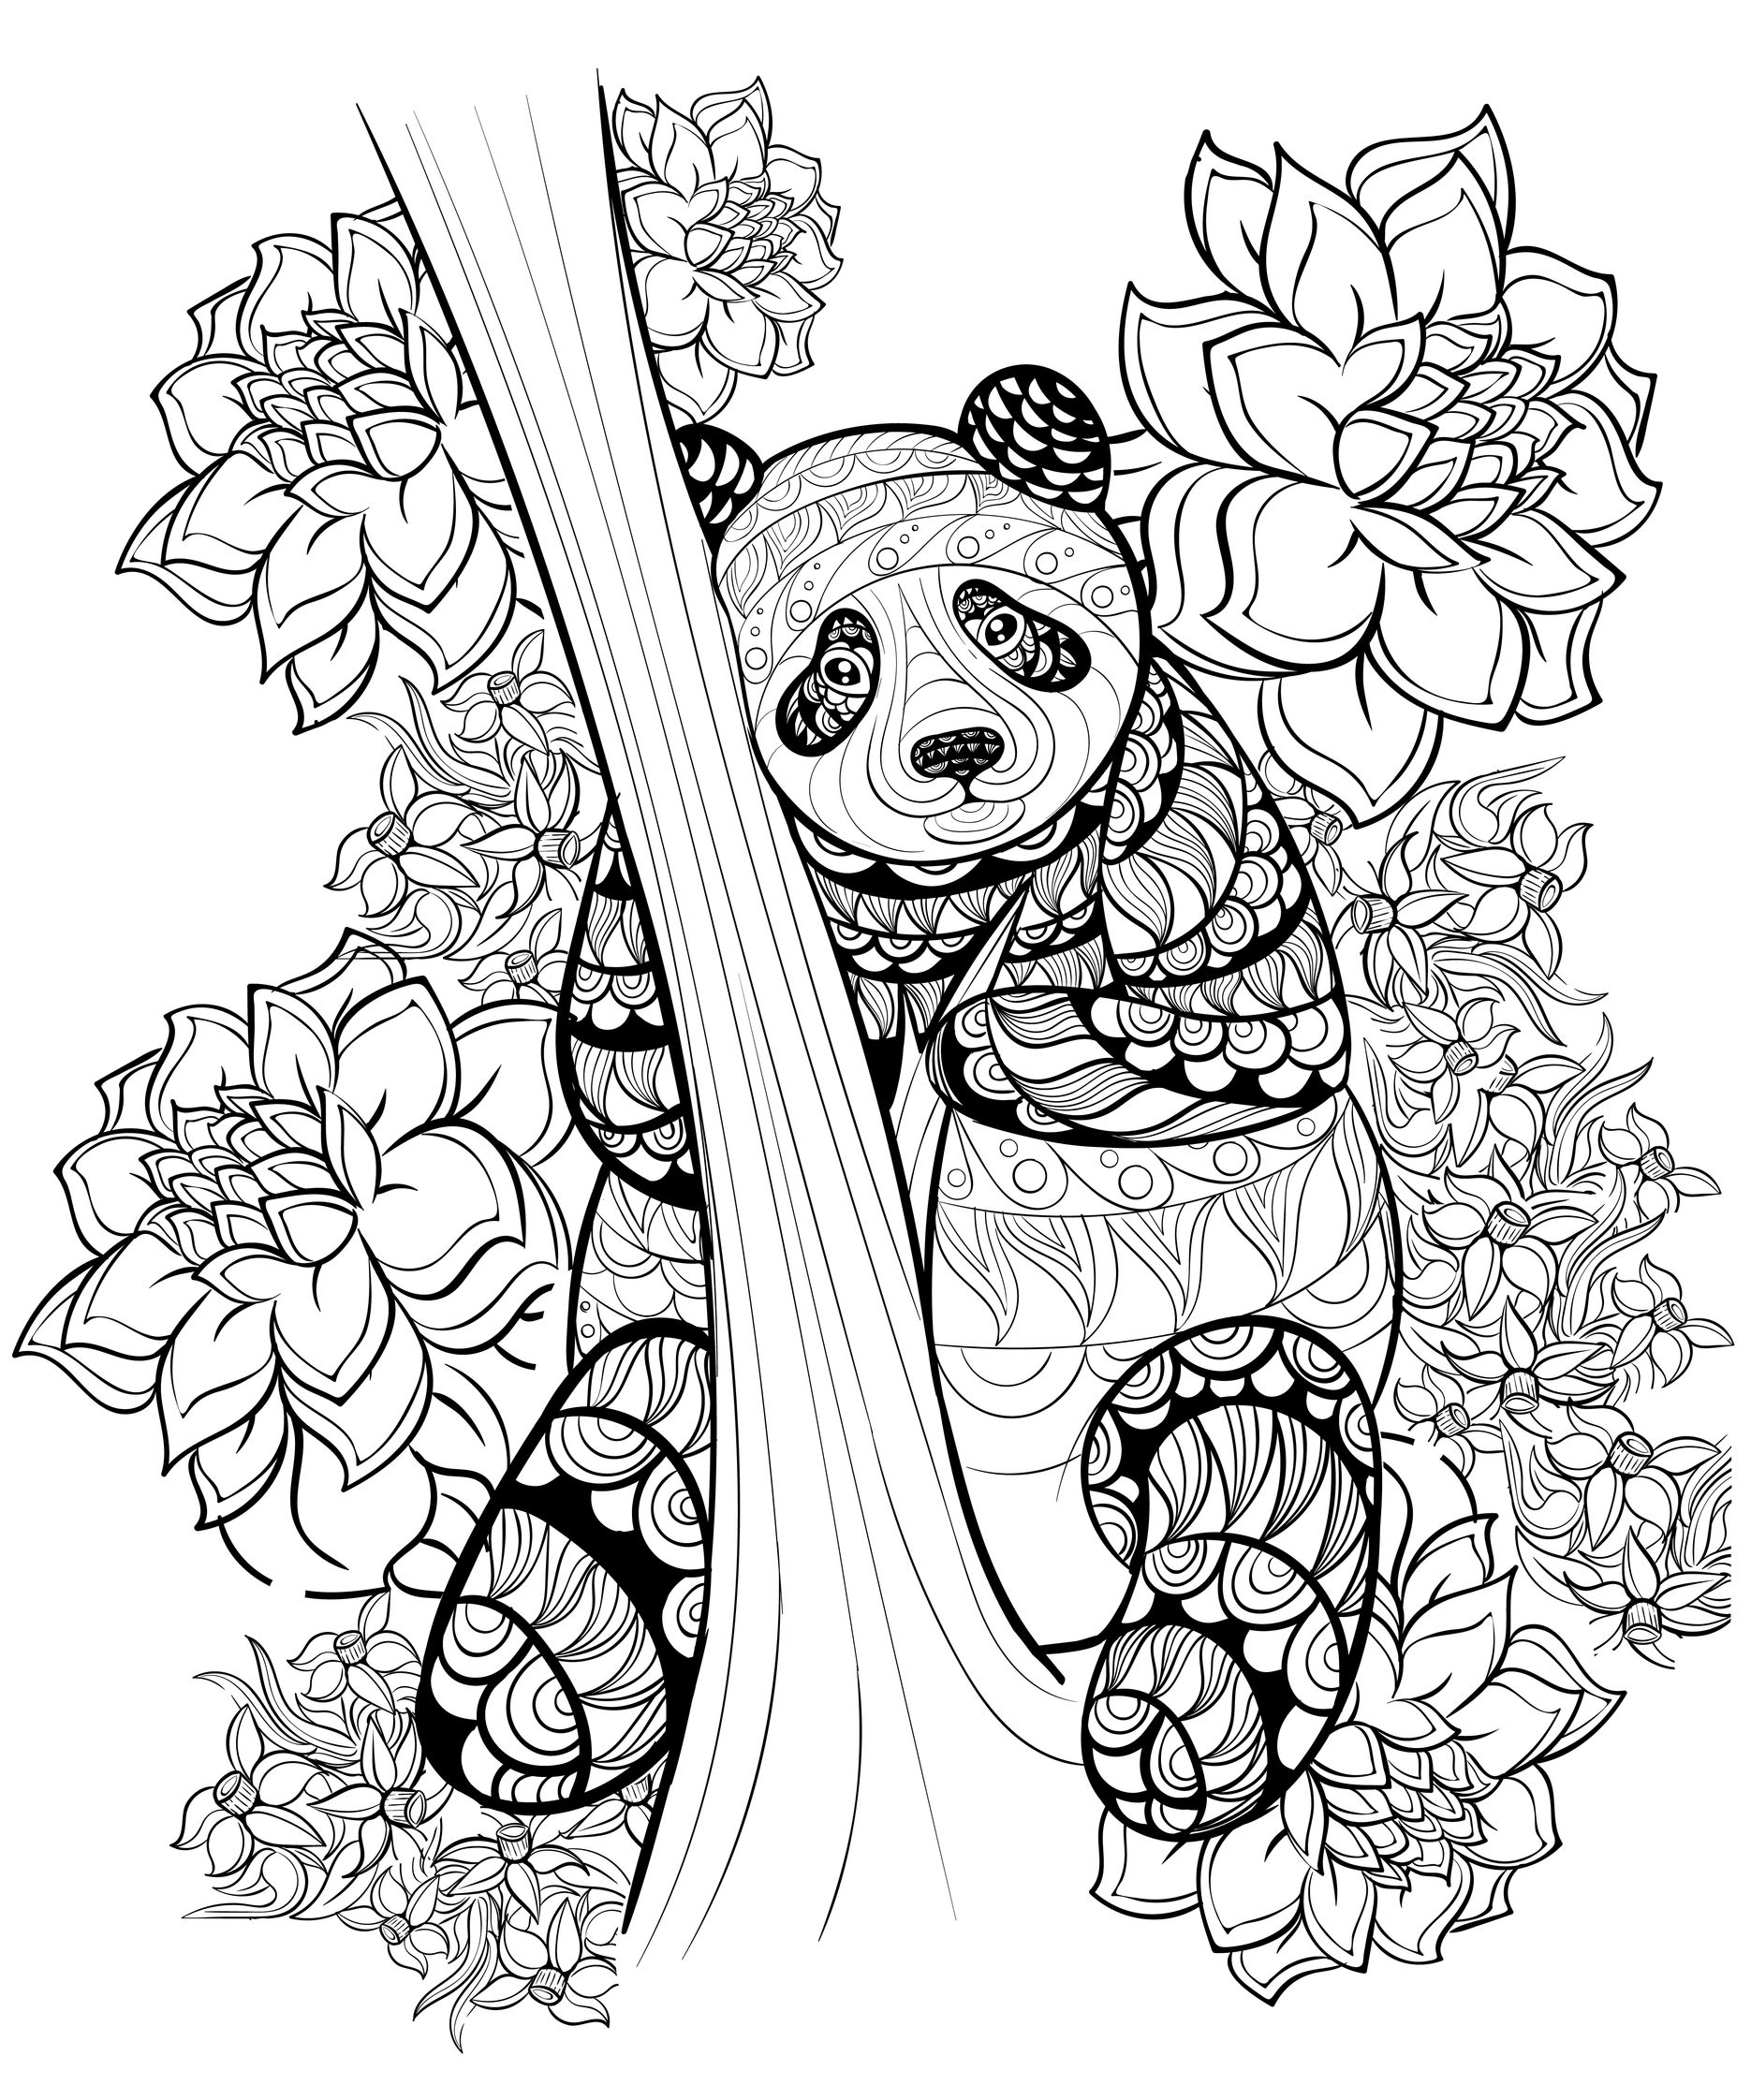 Baby Panda Bear Coloring Pages  Coloring Pages For Kids and All Ages